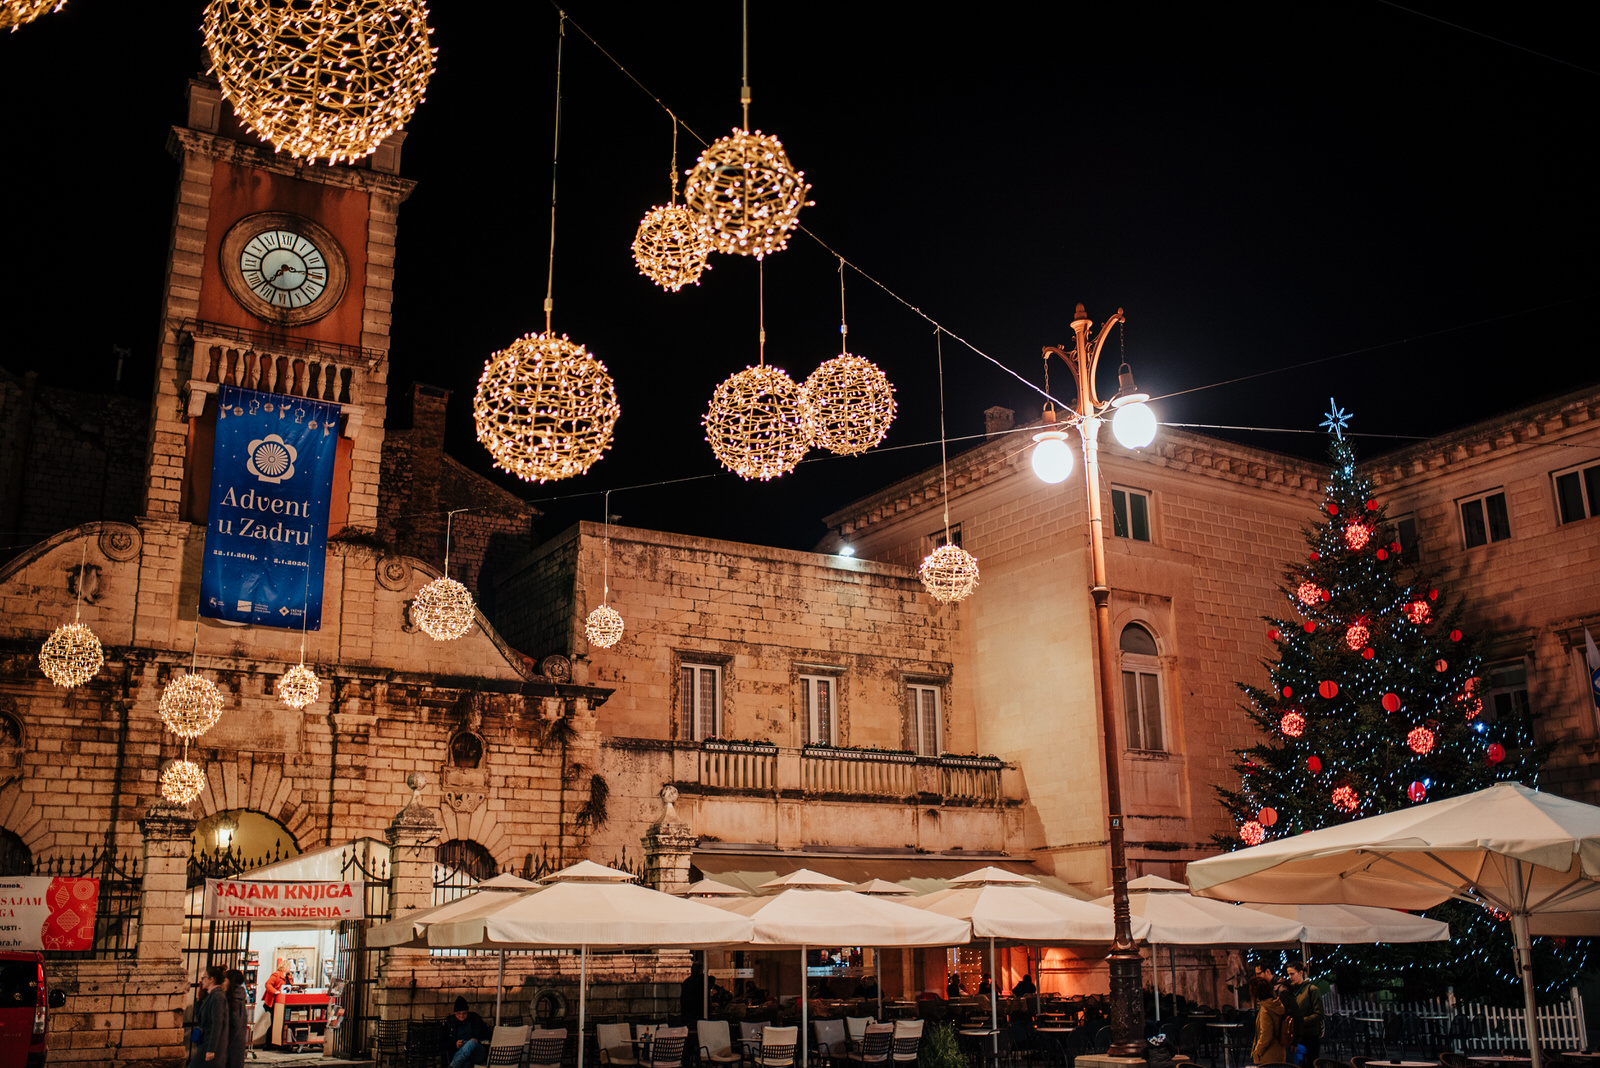 likaclub_advent-zadar-2019-4